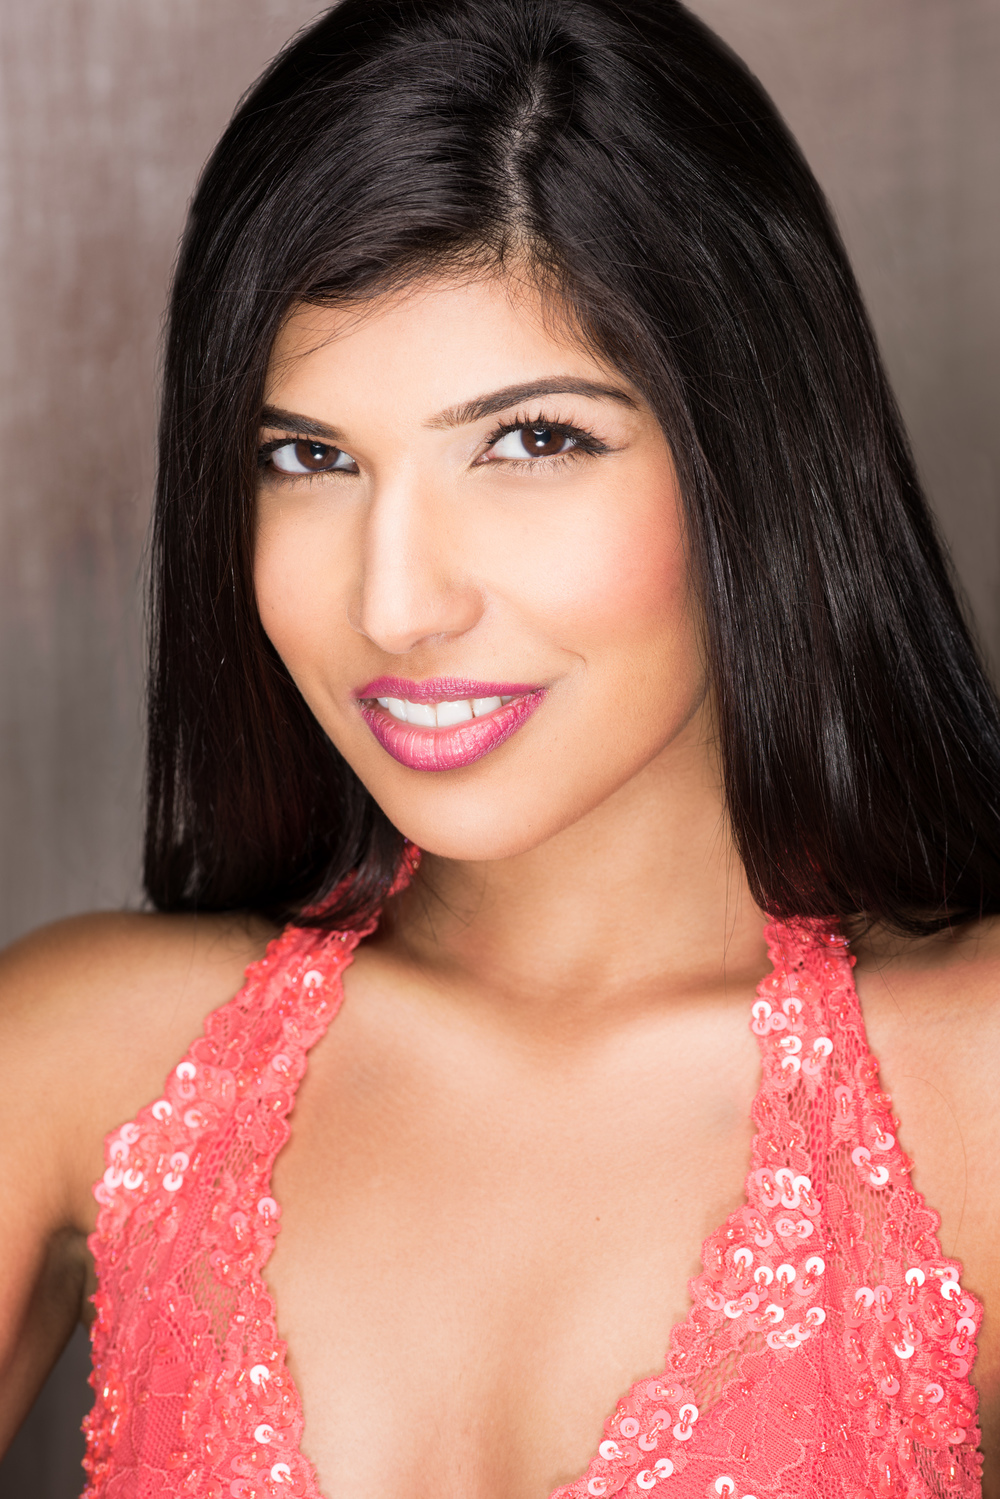 MISS INDIA-CANADA 2014 Annu Ghaidu